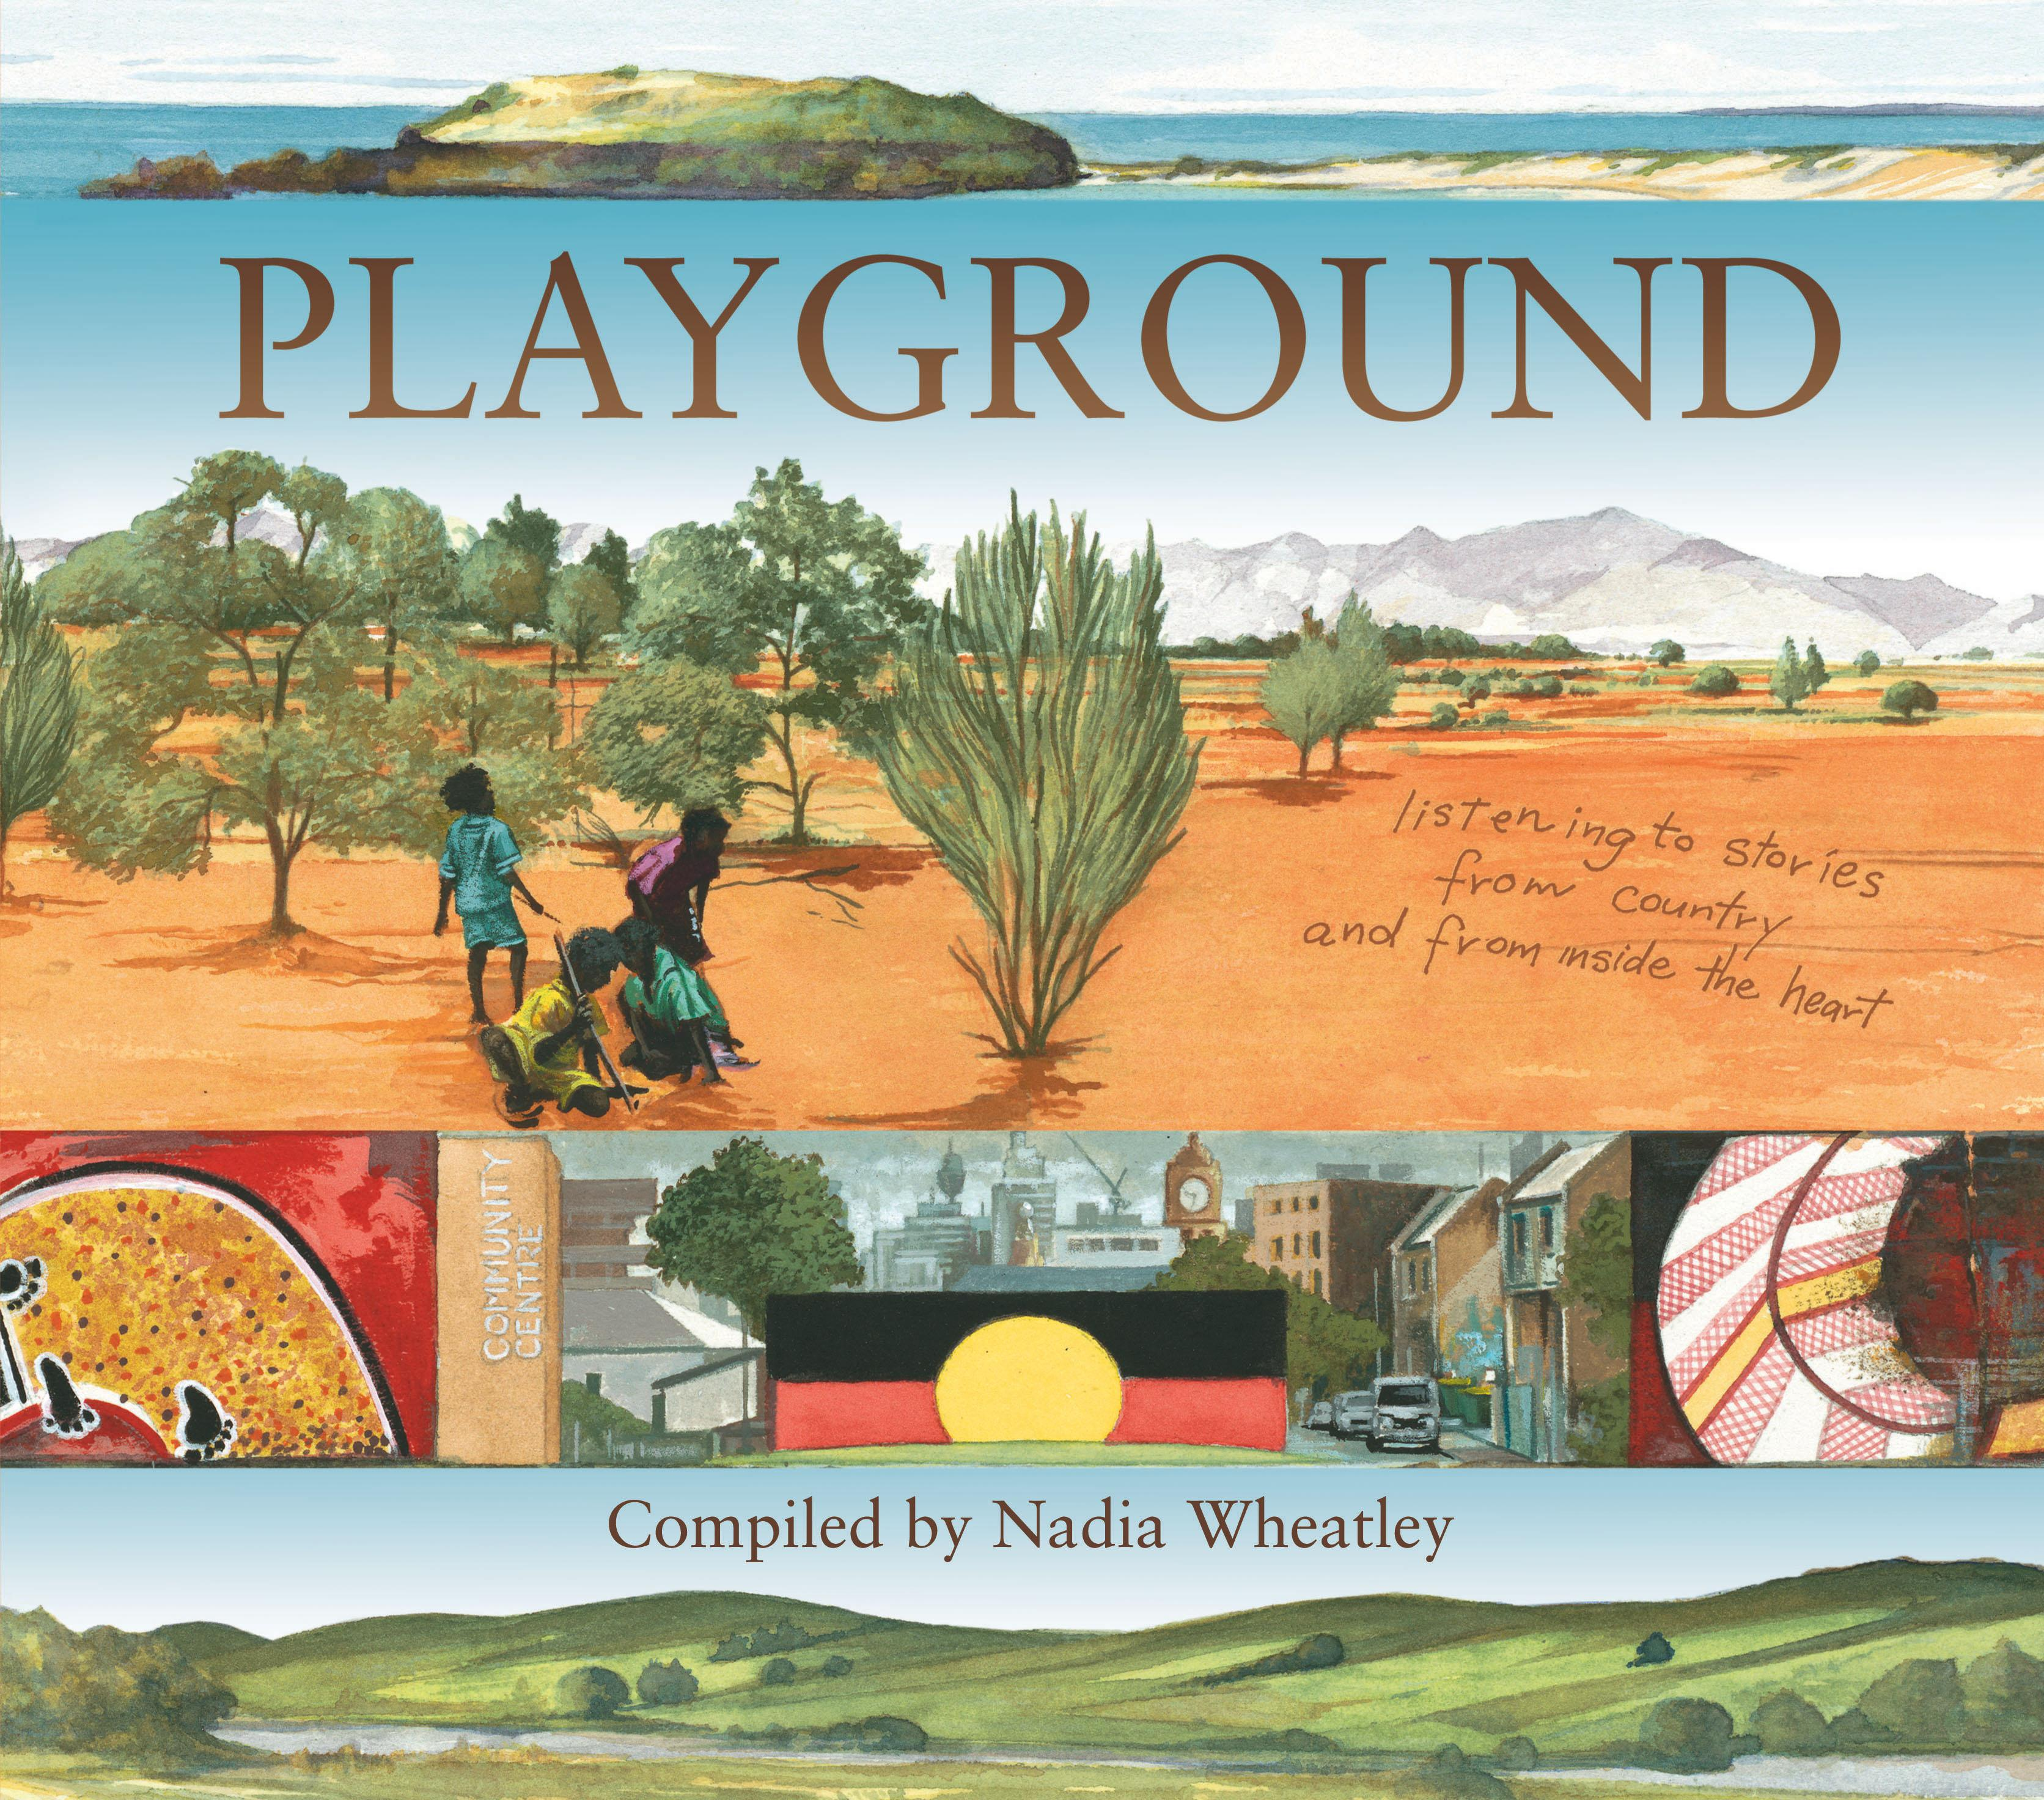 Playground: Listening to Stories from Country and from InsidetheHeart